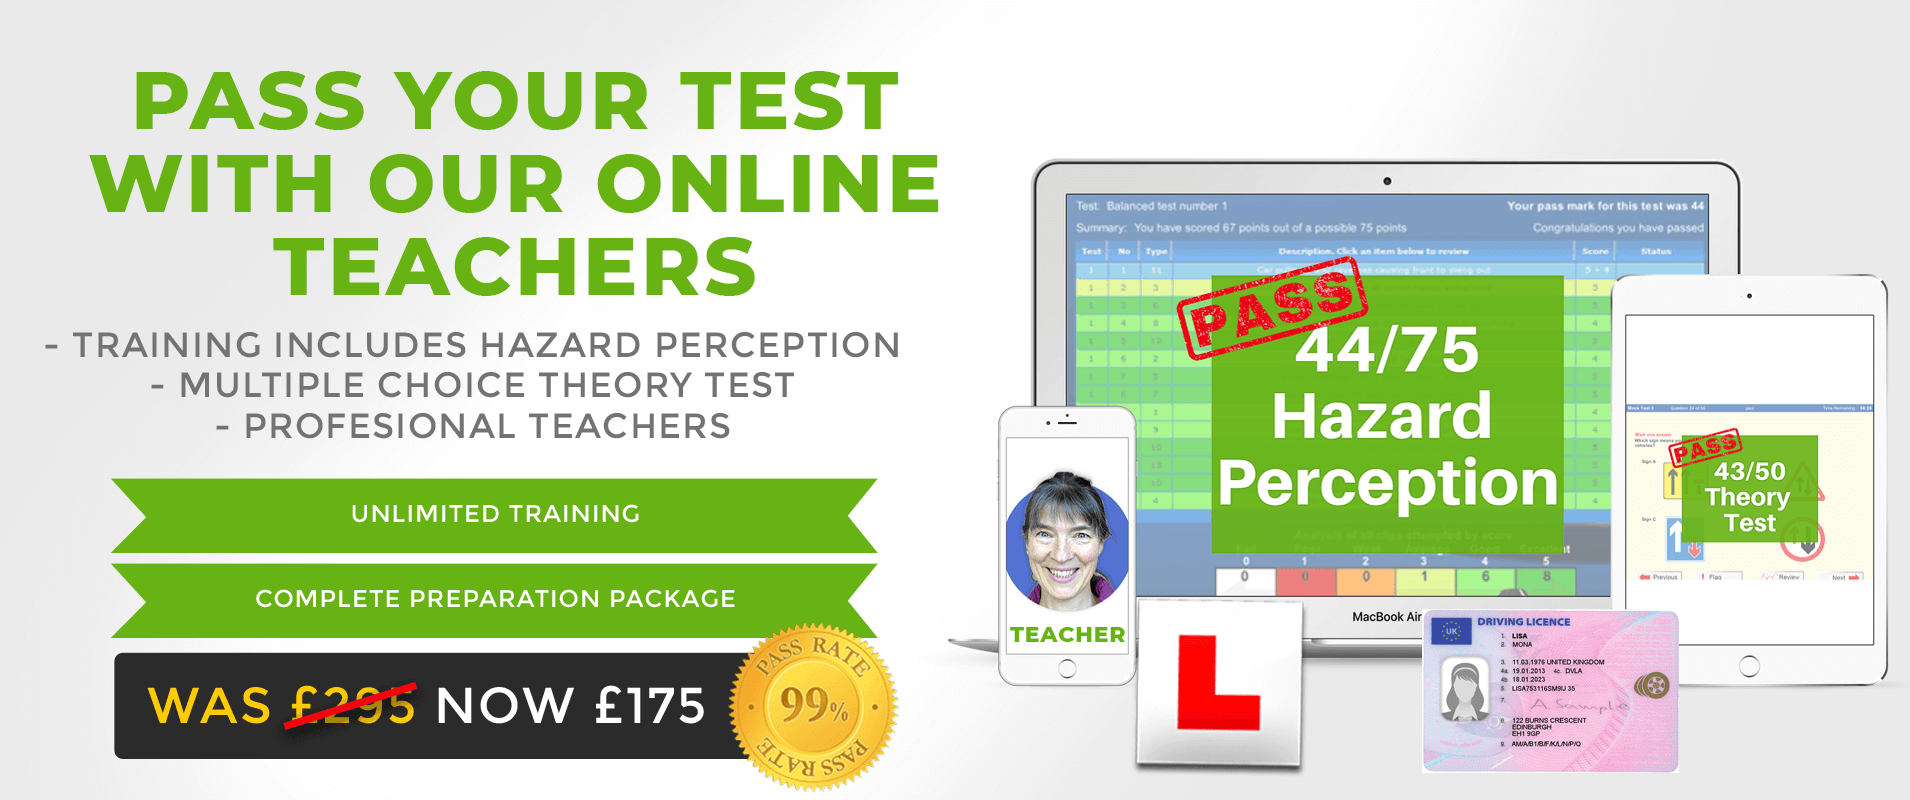 Driving theory online training